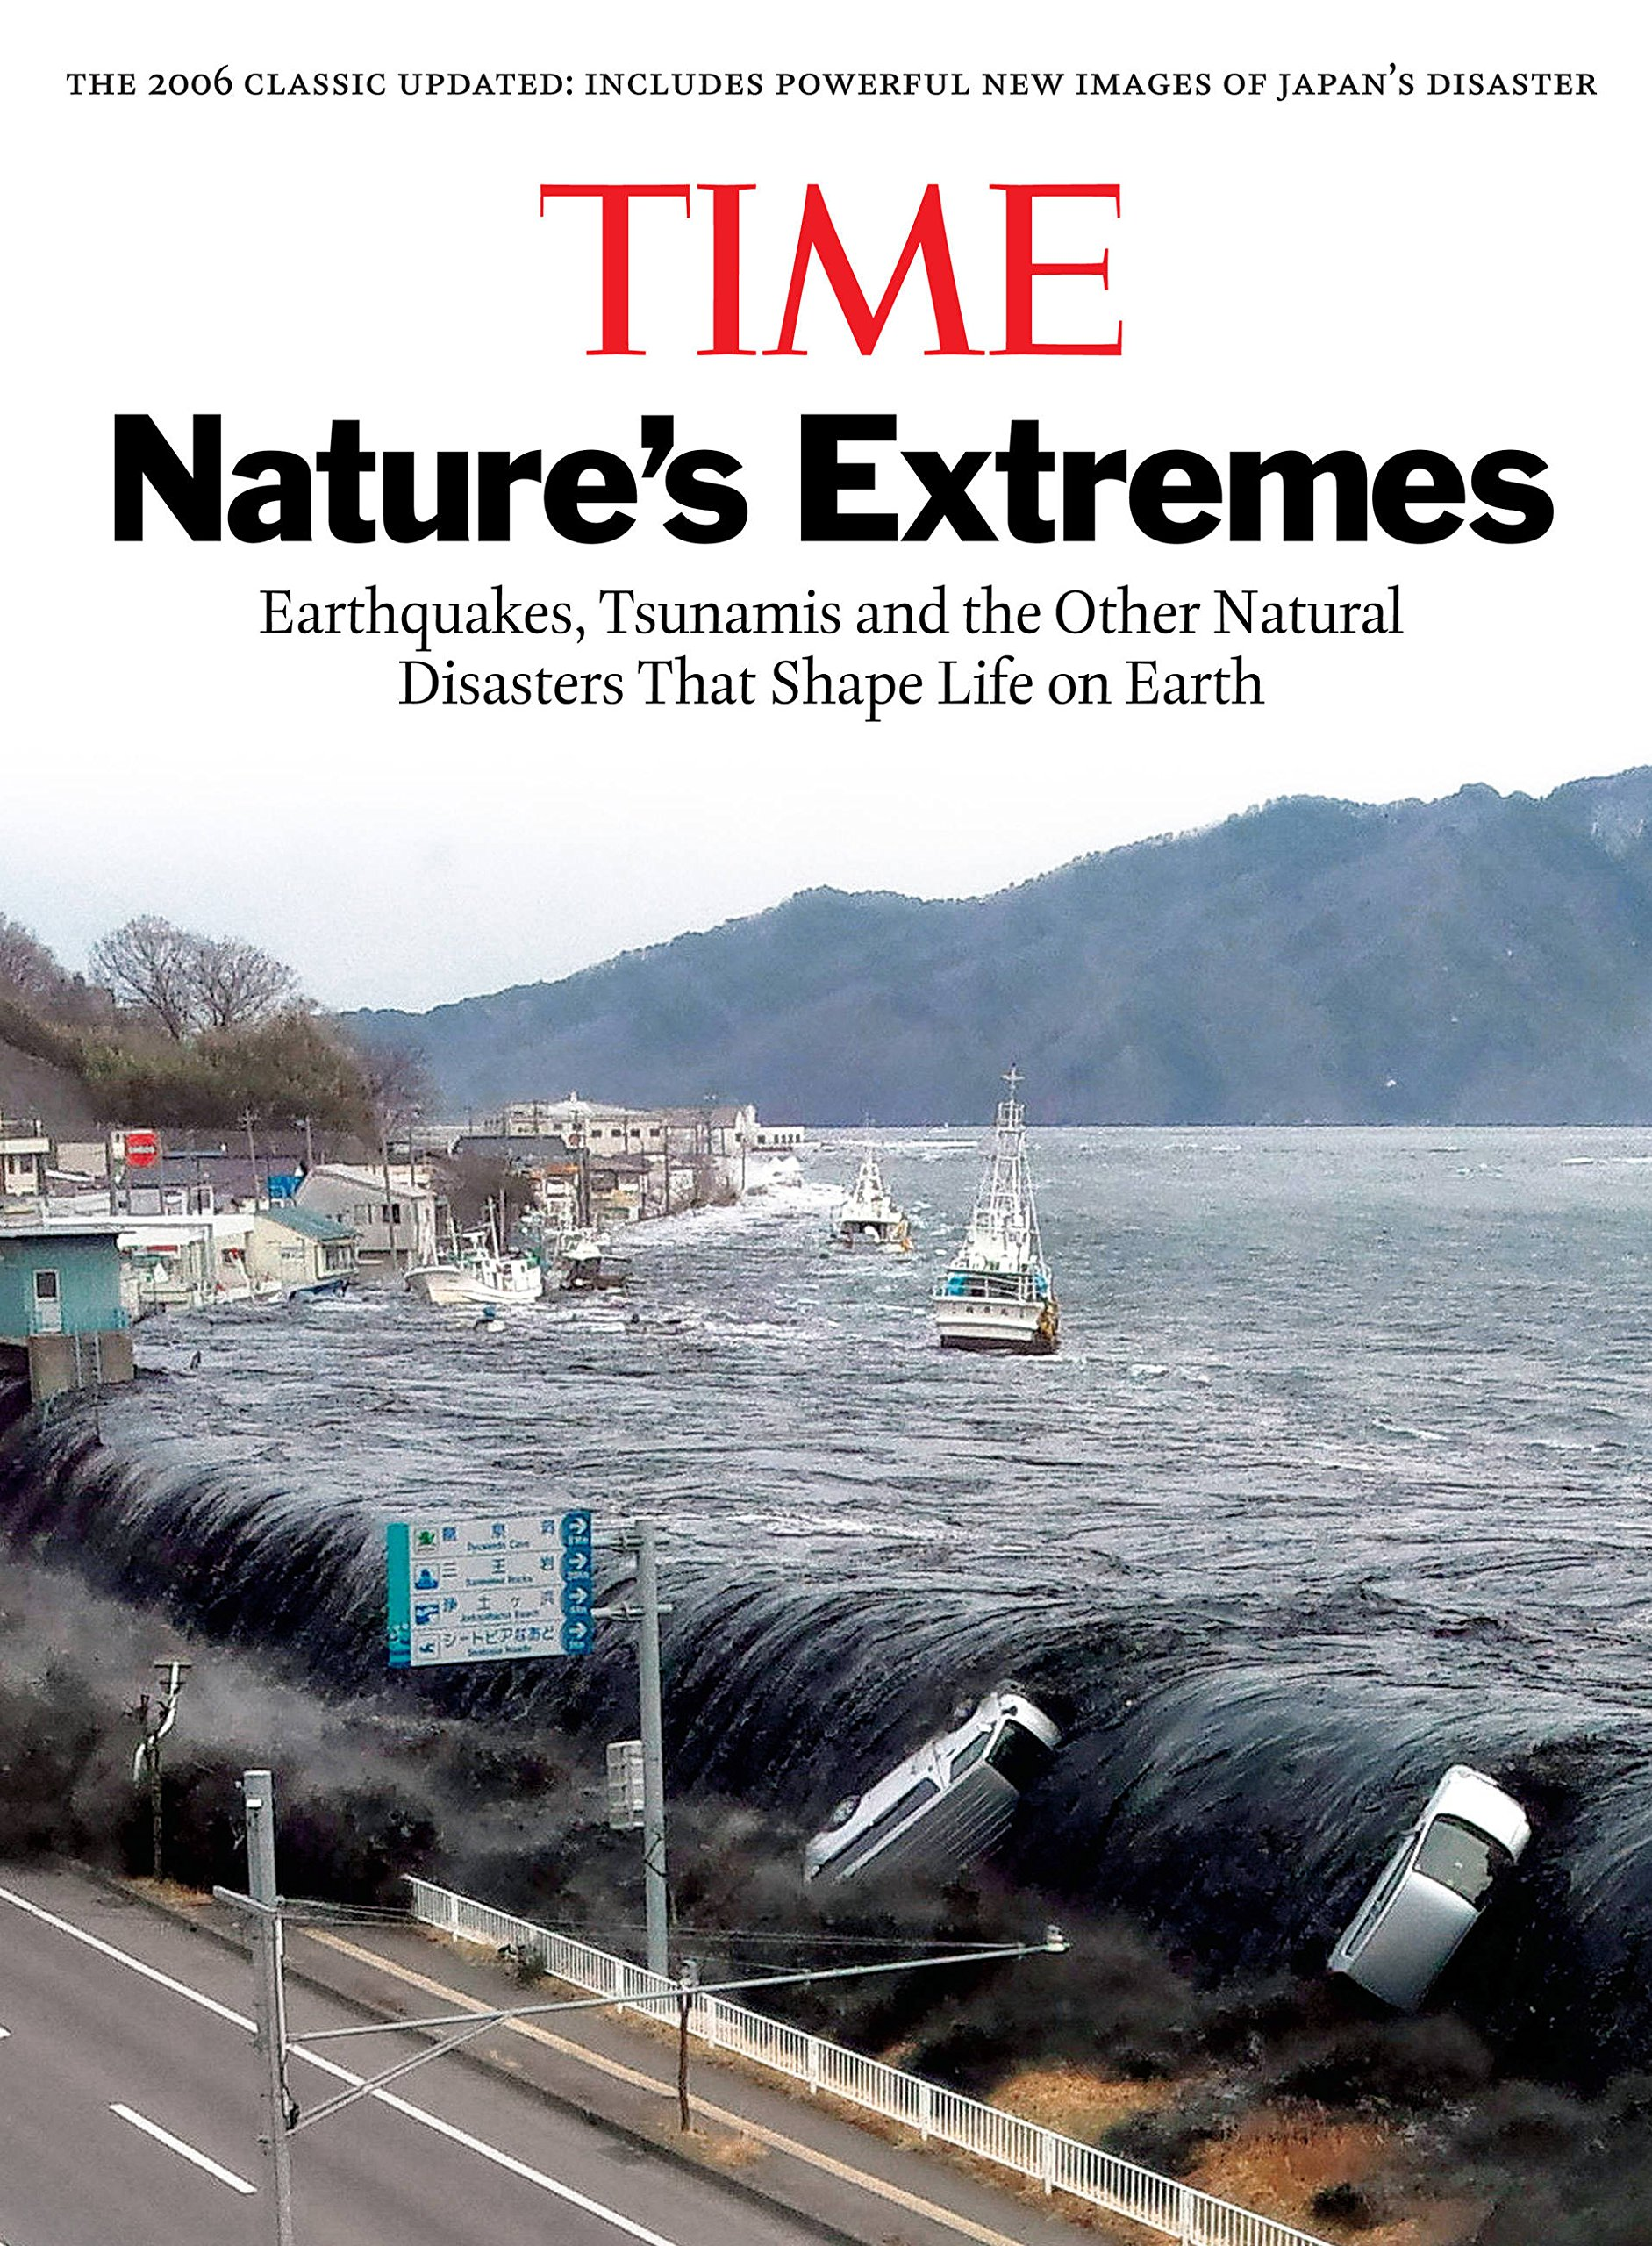 Download Time Nature's Extremes: Earthquakes, Tsunamis and the Other Natural Disasters That Shape Life on Earth PDF ePub fb2 book